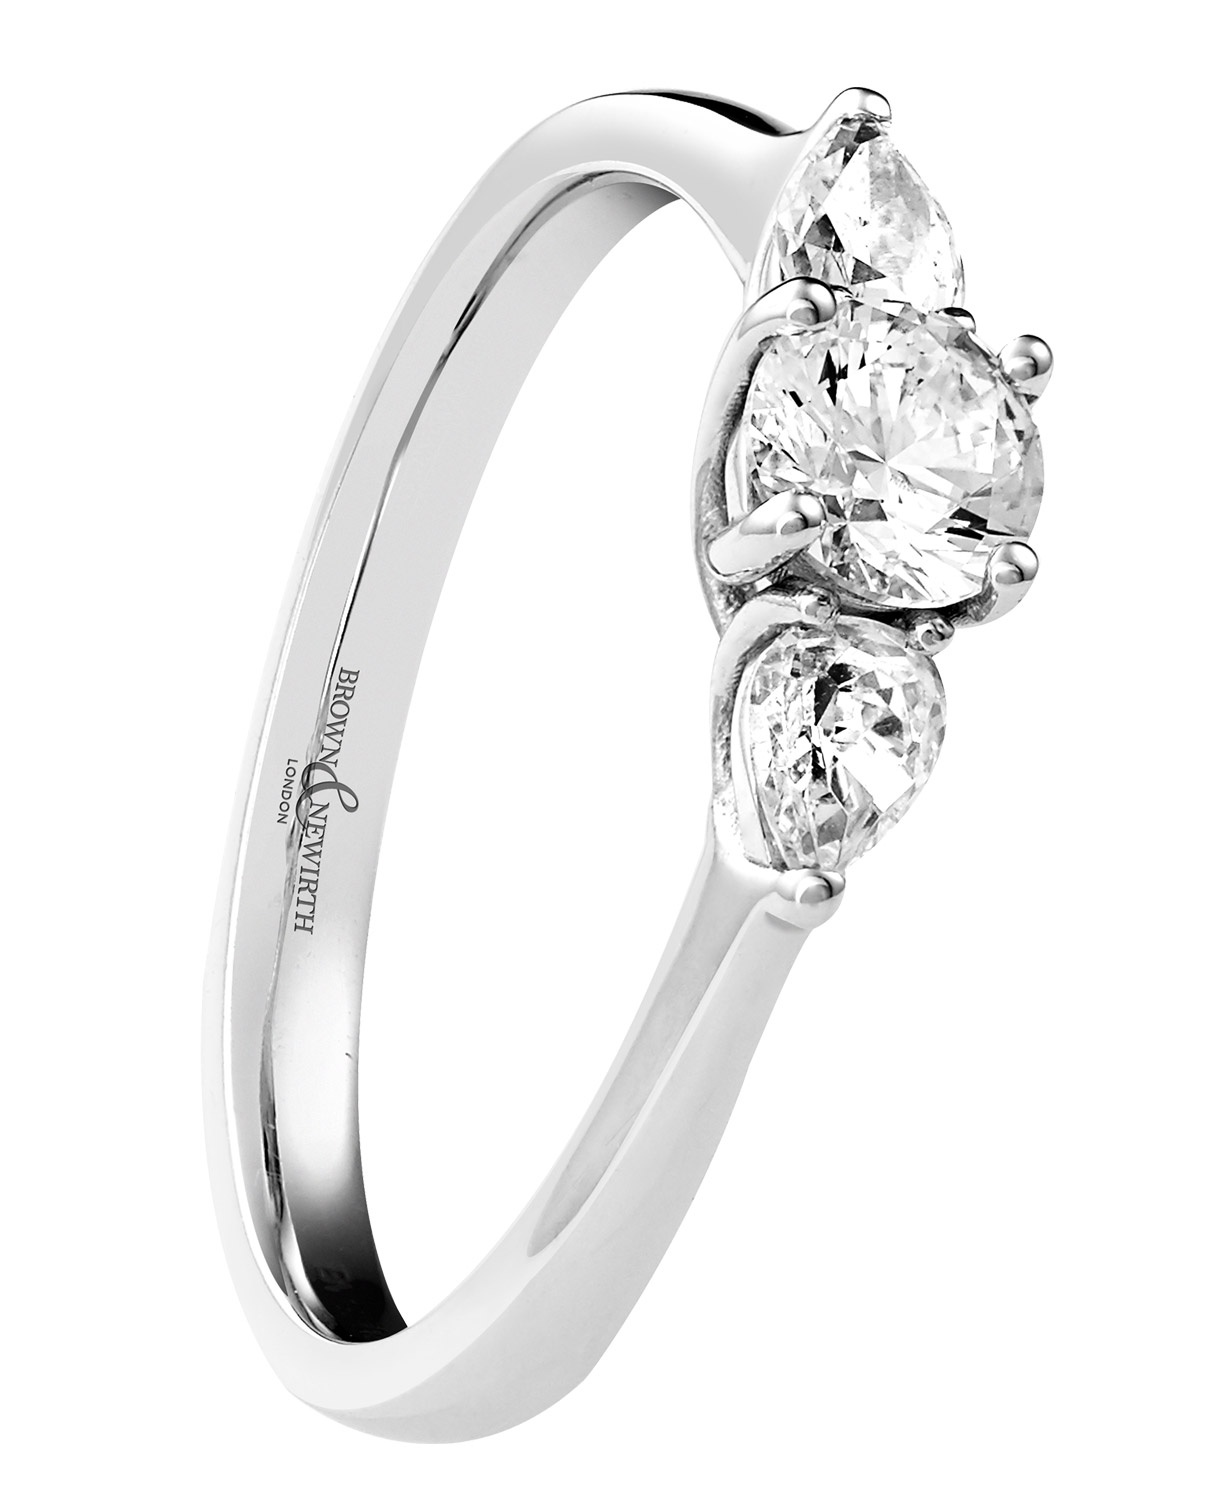 0.33ct 18ct White Gold Brilliant cut Diamond Ring with Pear Shaped Shoulders-0